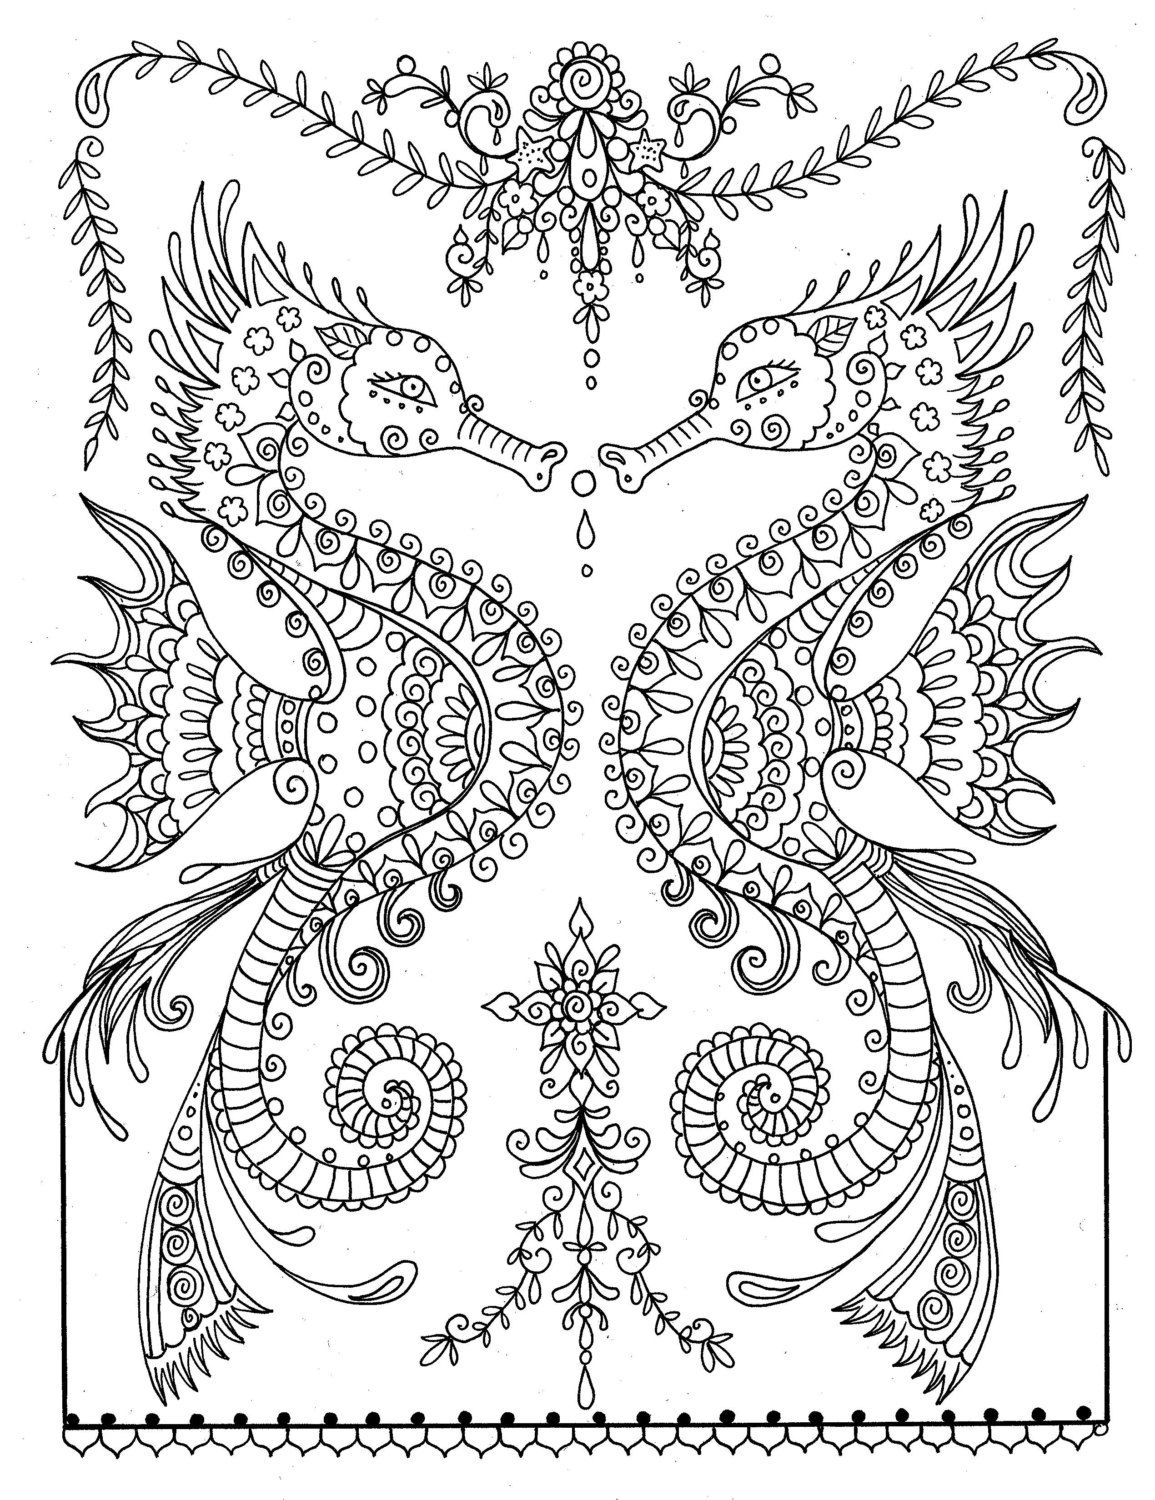 mandala coloring page from zen out vol 1 by krishthebrand